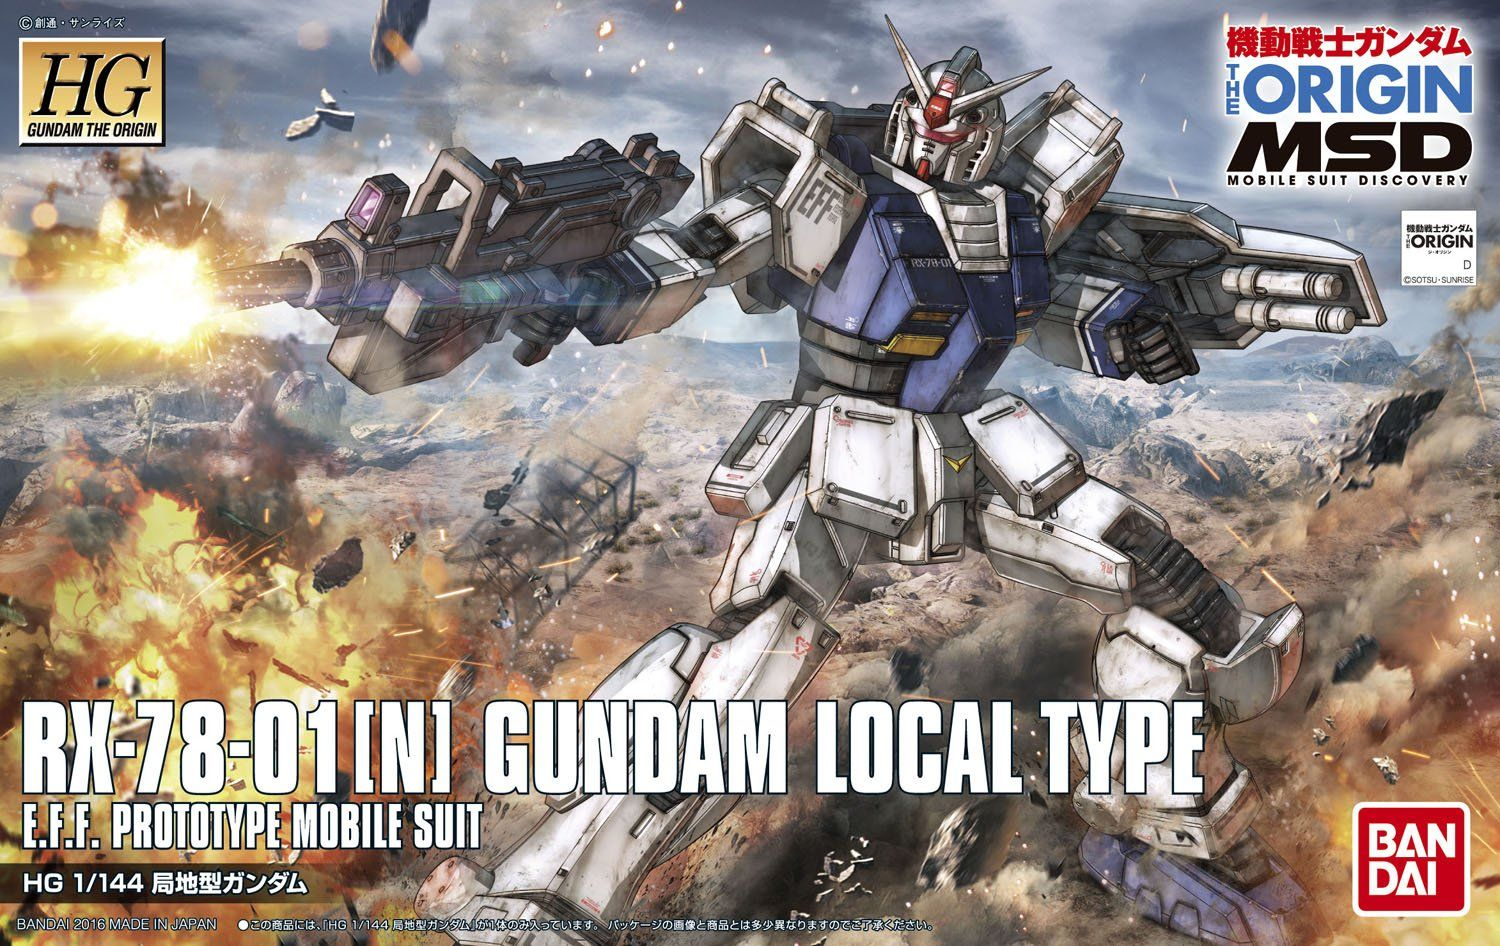 HG 1/144 RX-78-01[N] 局地型ガンダム [Gundam Local Type] [TheORIGIN] 0210001 5055725 4549660100010 4573102557254